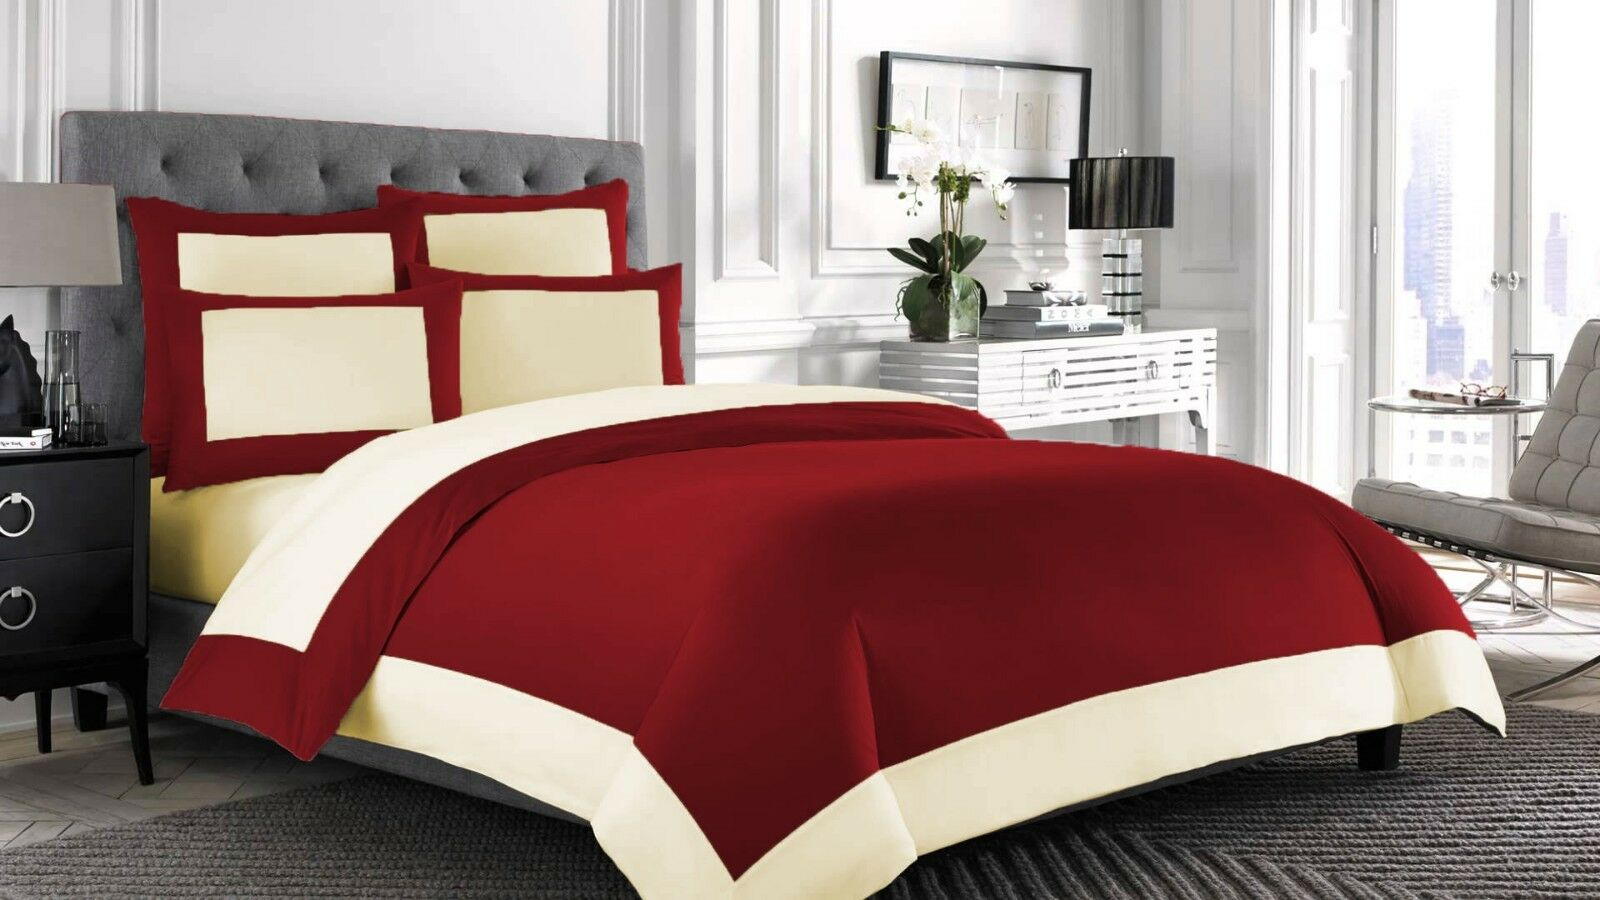 Egyptian Cotton 1000 Thread Count Border 1 Piece Flat Sheet All Sizes All colors